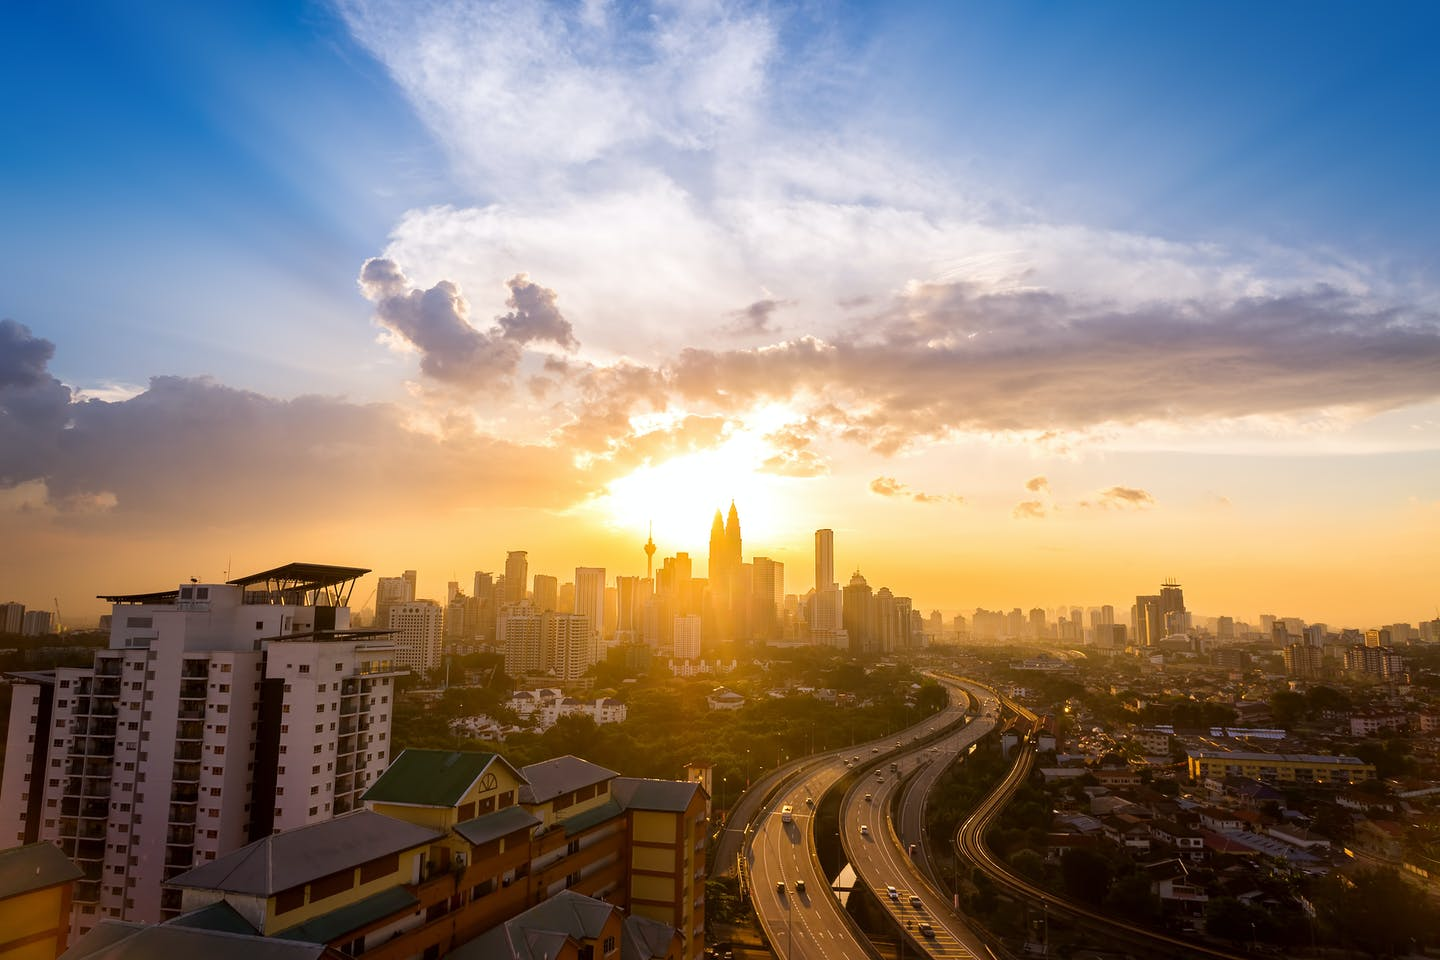 KL skyline at sunrise